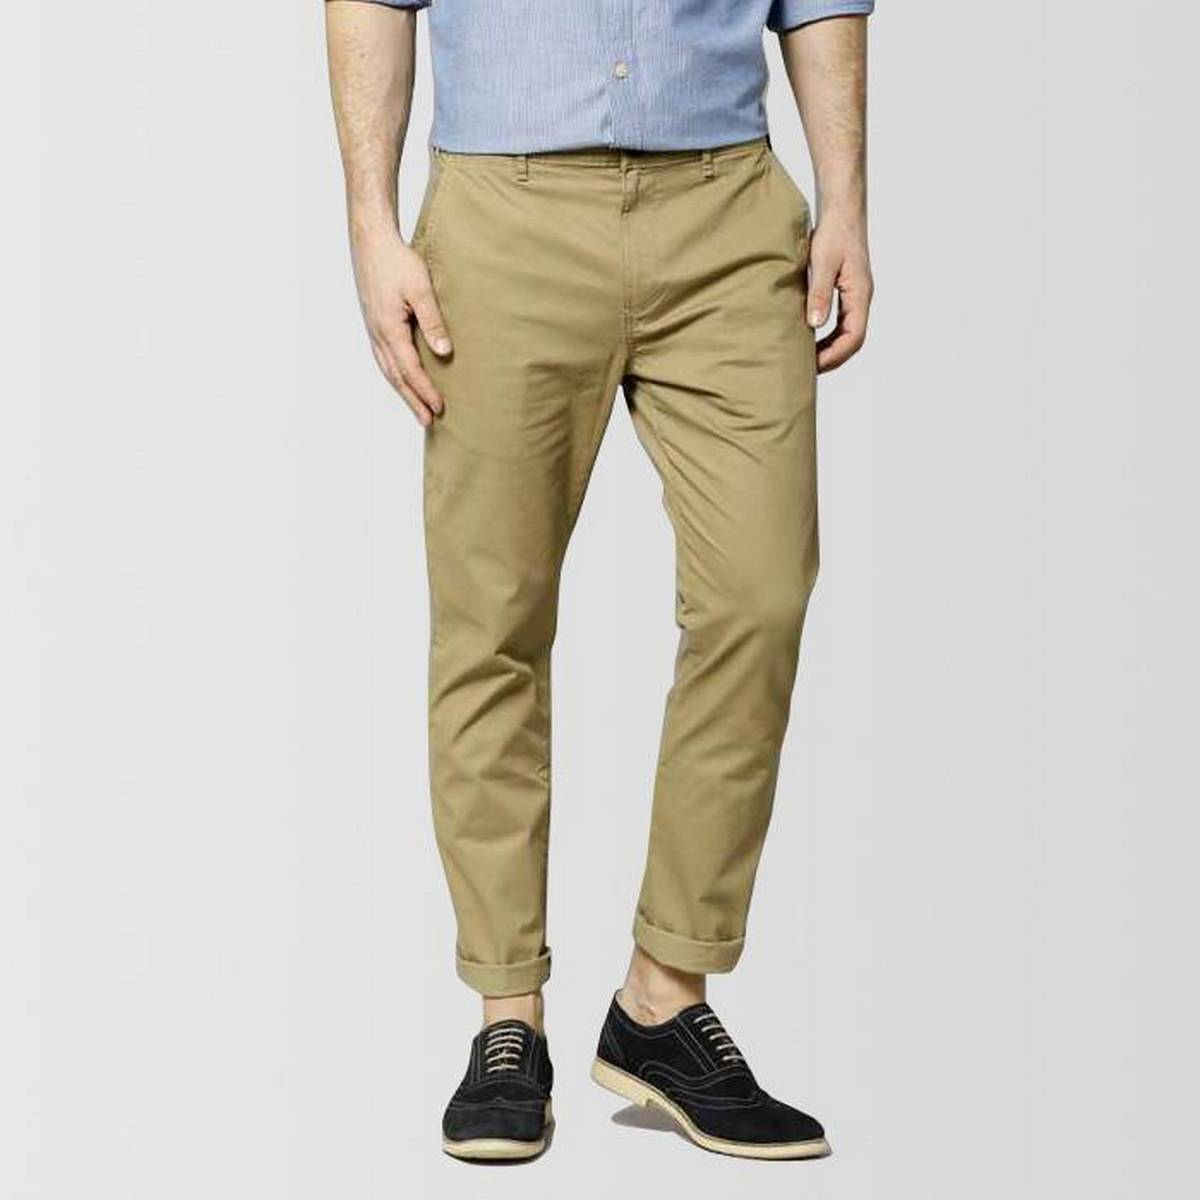 Camel Brown Slimfit Stretchable Cotton Chinos